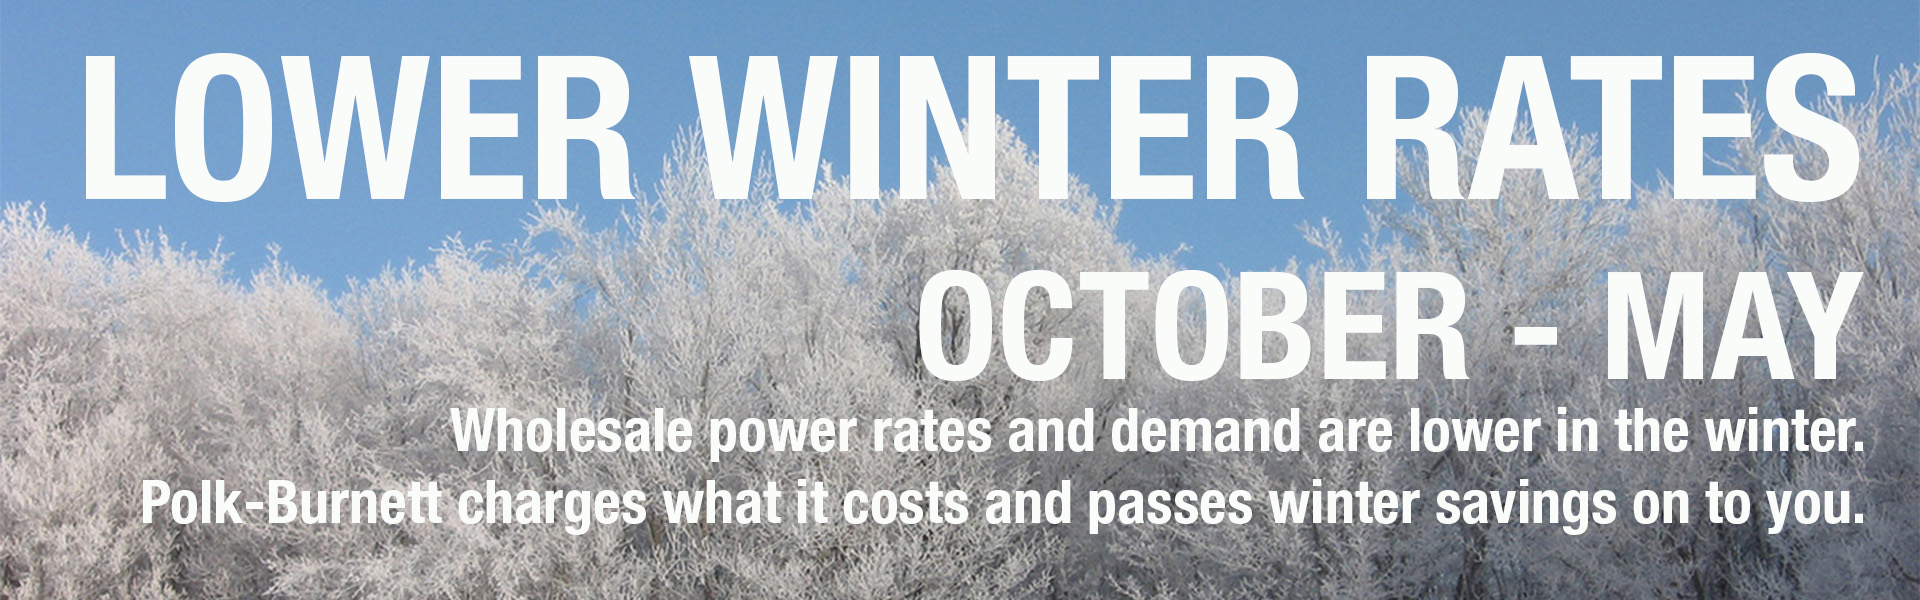 Co-op electric rates are lower in the winter